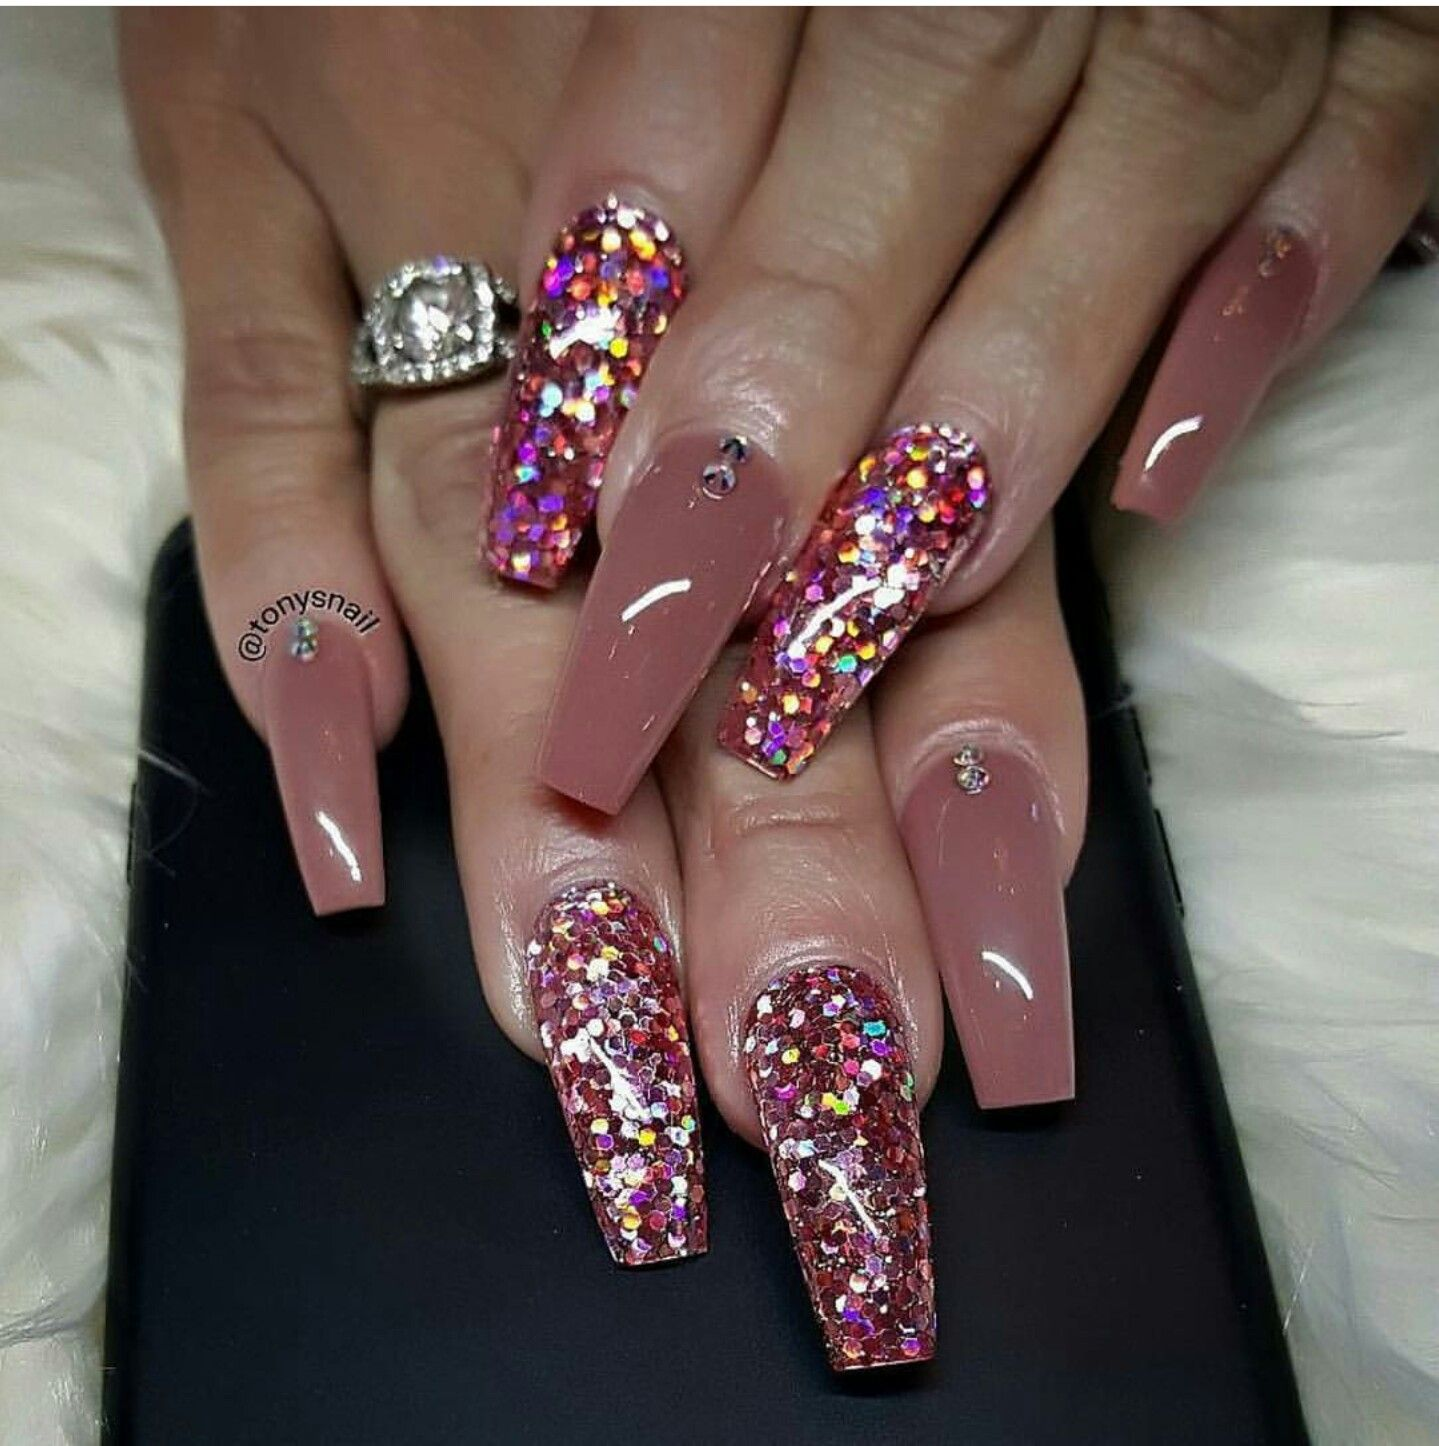 Pin by Catherine Oliver on My nails girl | Pinterest | Diamond design